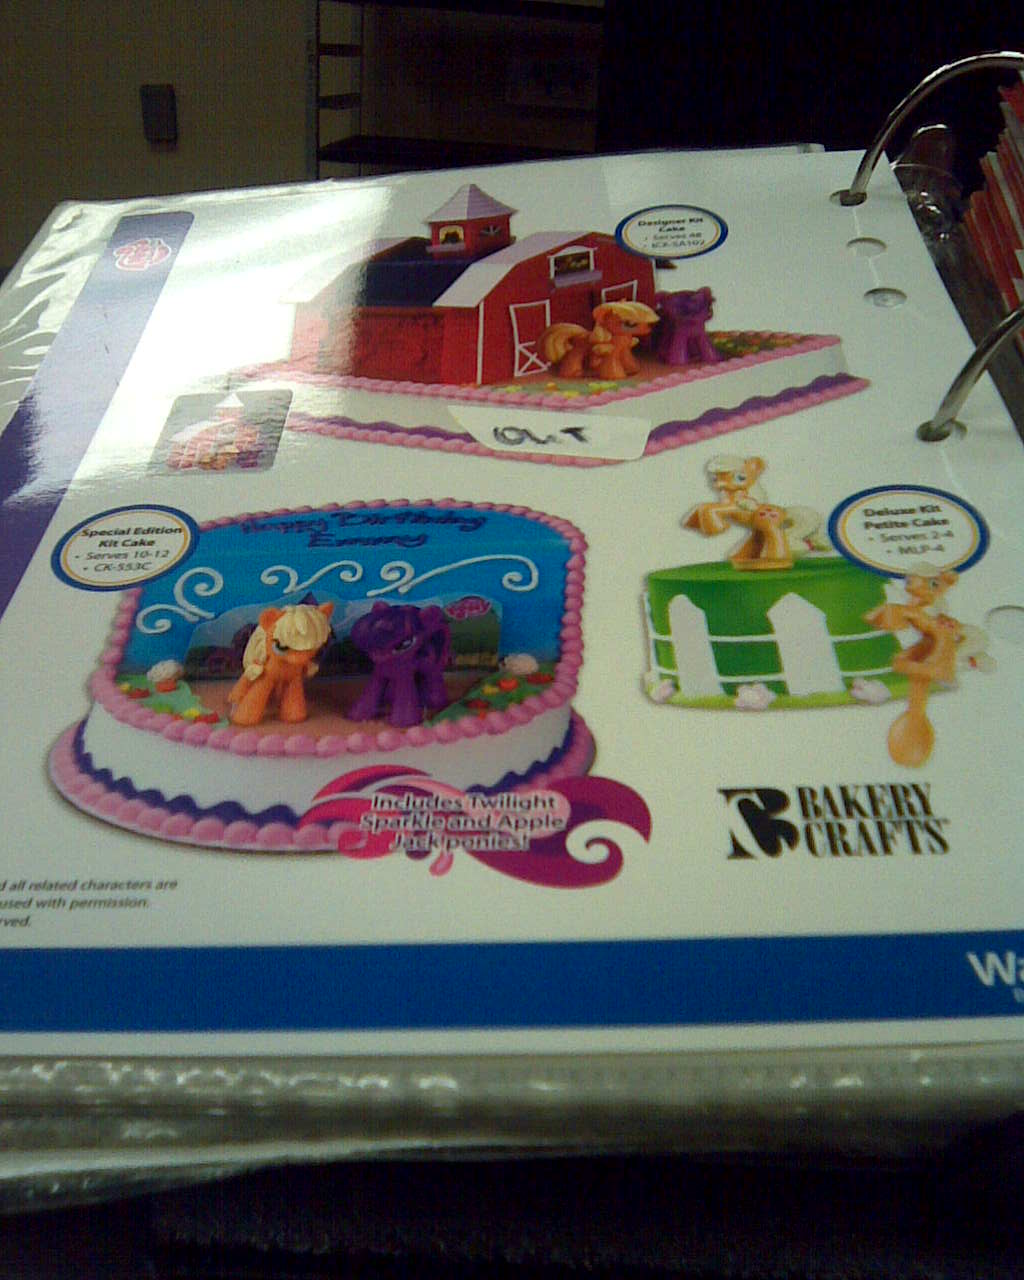 MLP Stuff!: More Pony Cakes At Wal-Mart